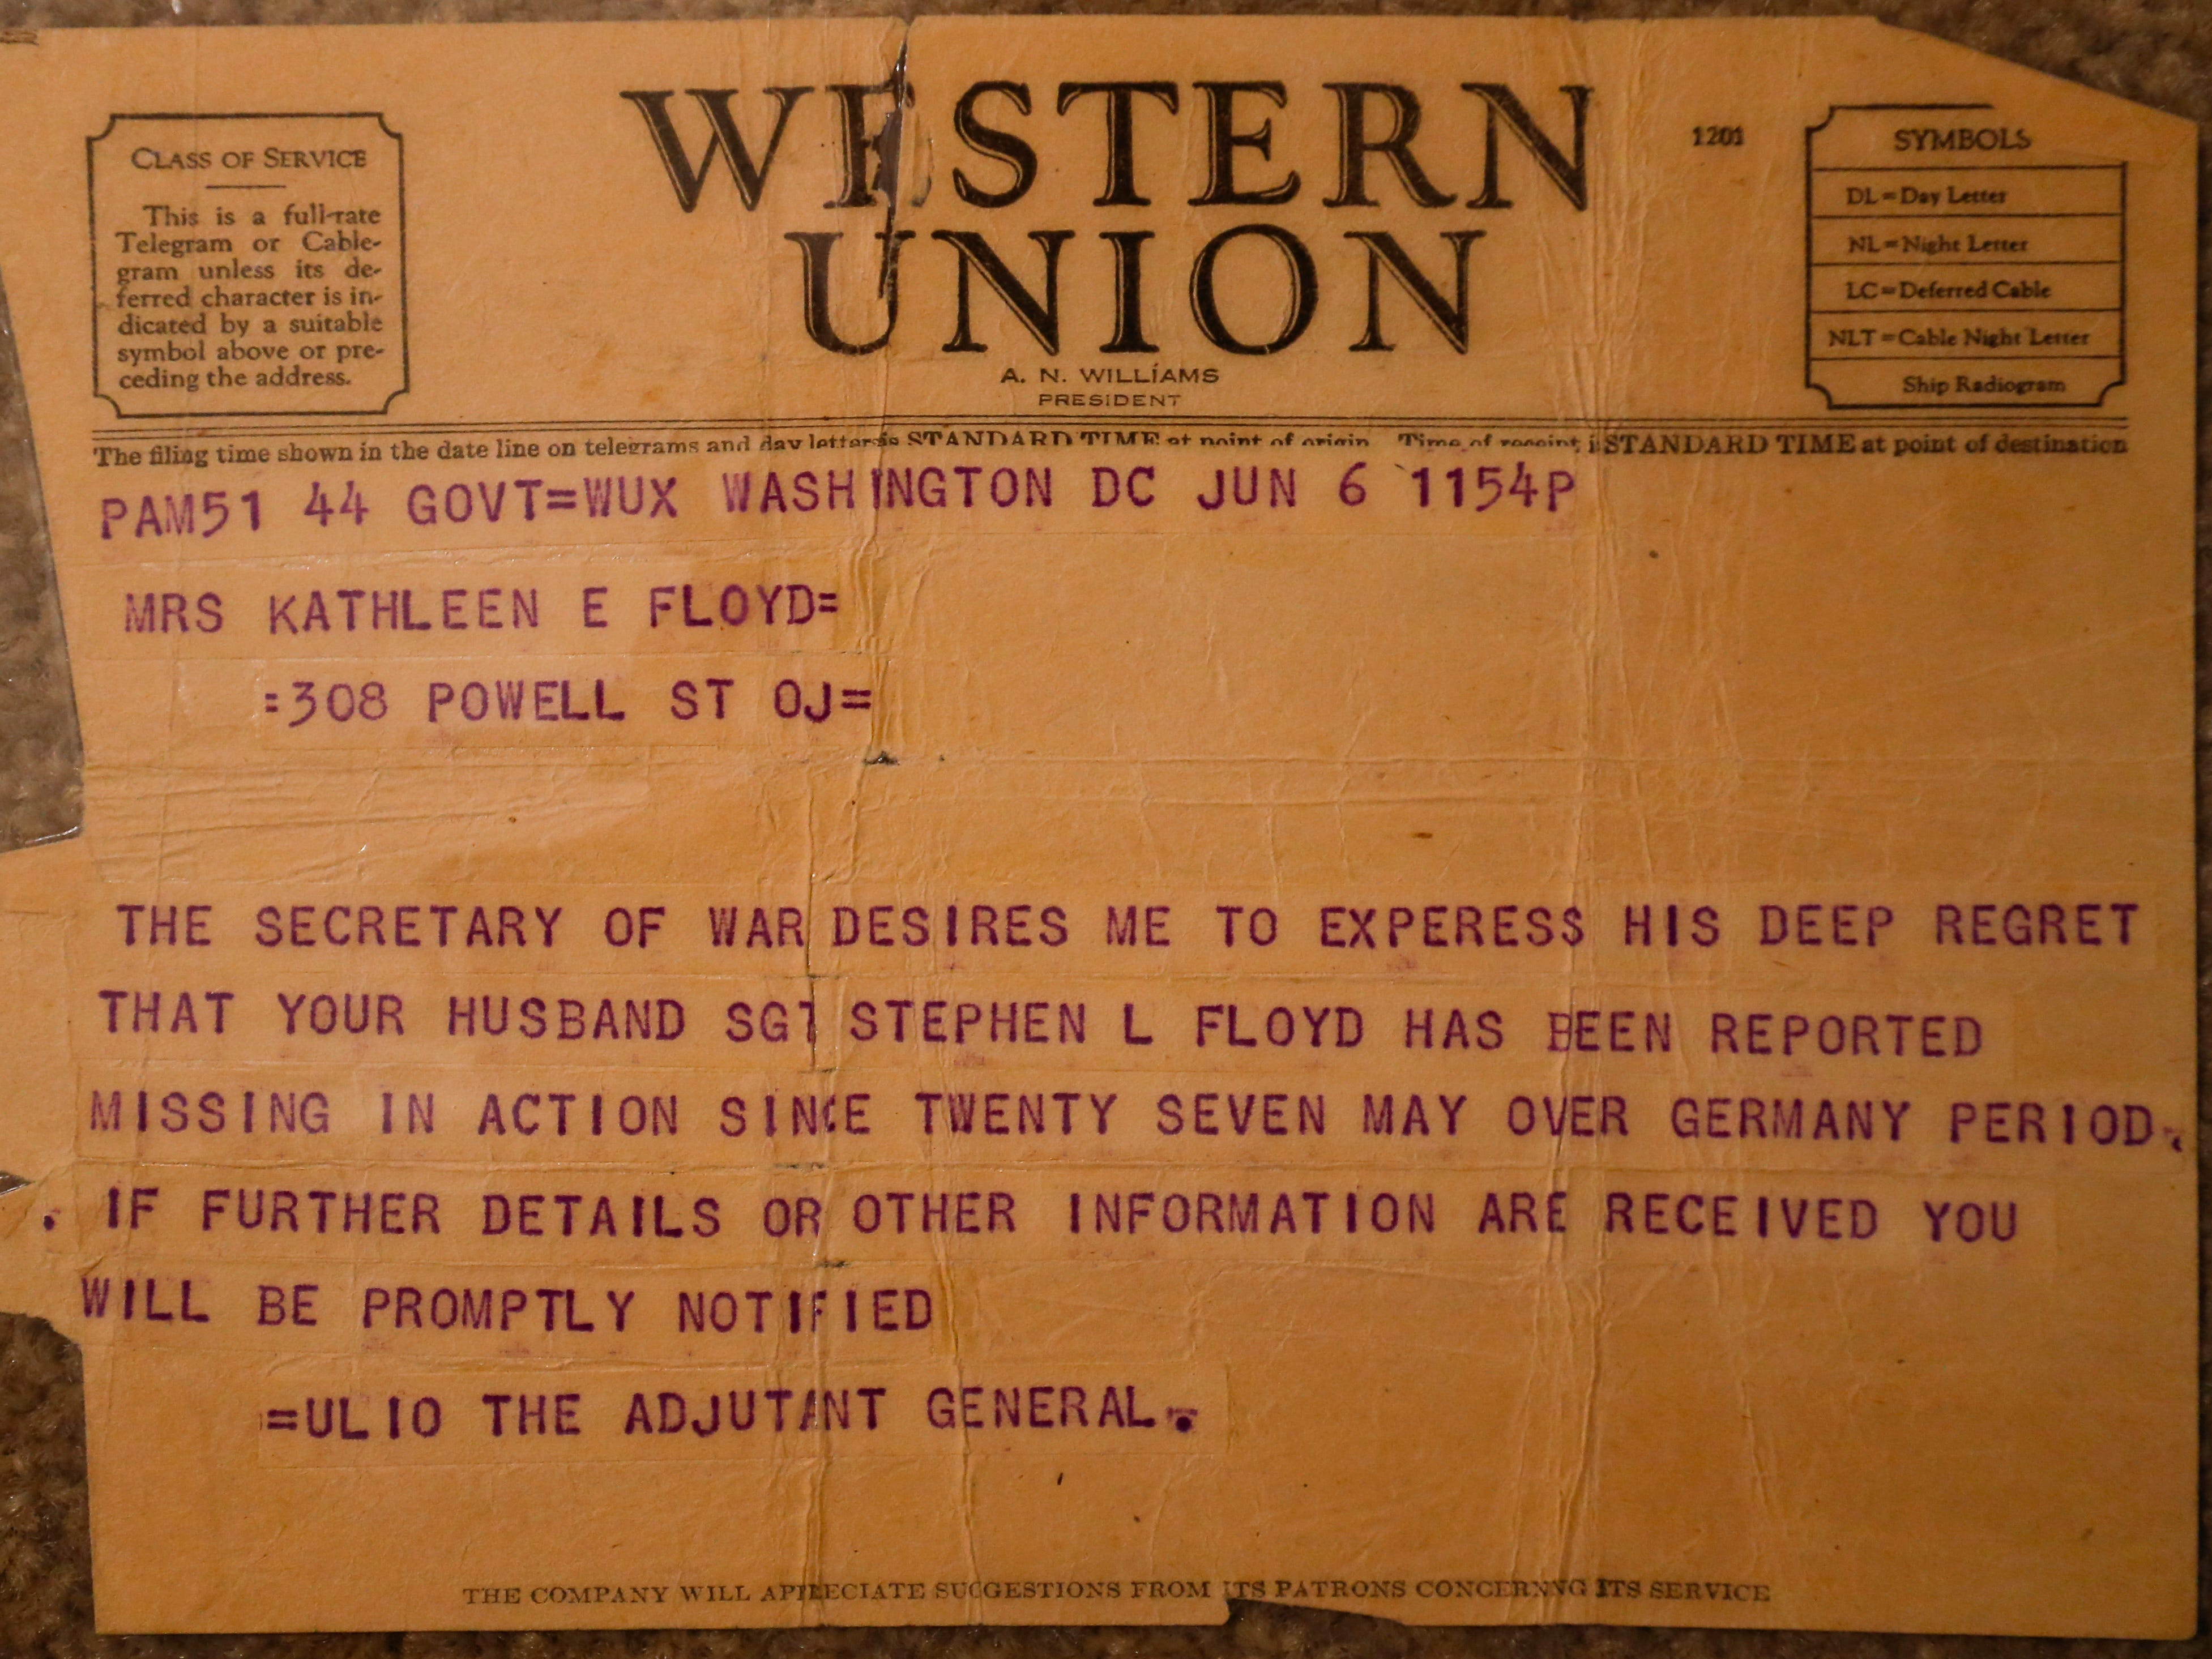 The Western Union telegram sent to Stephen Floyd's wife from the Army informing her that he was a missing in action.